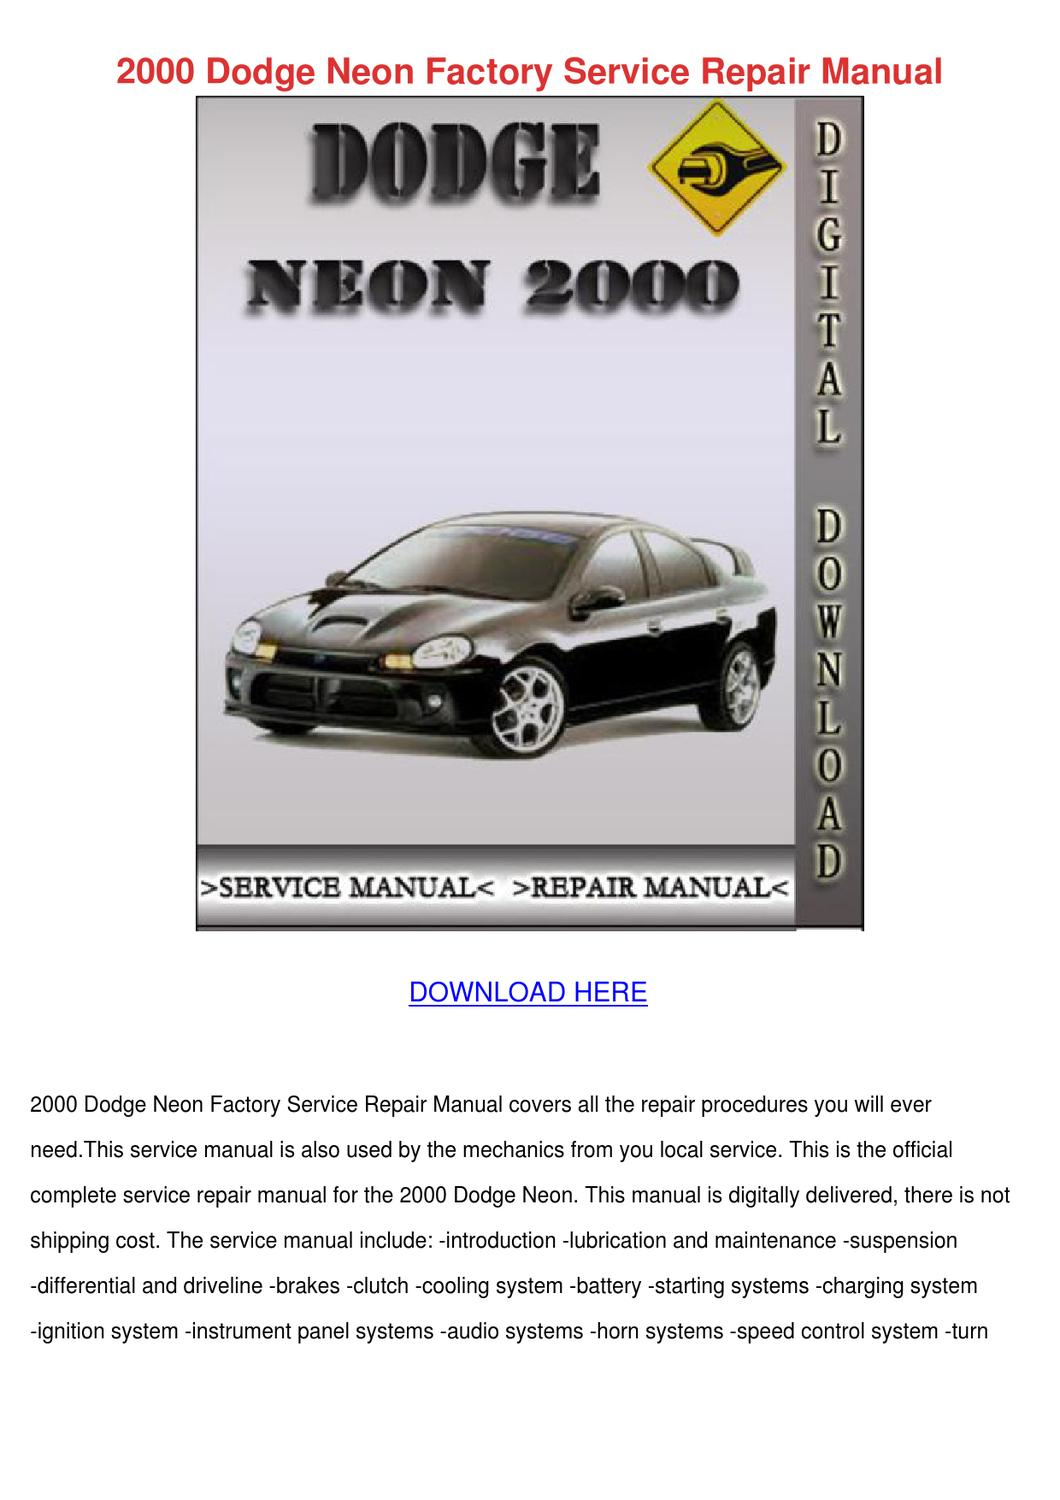 2000 dodge neon horn wiring diagram for motorhome batteries factory service repair manual by